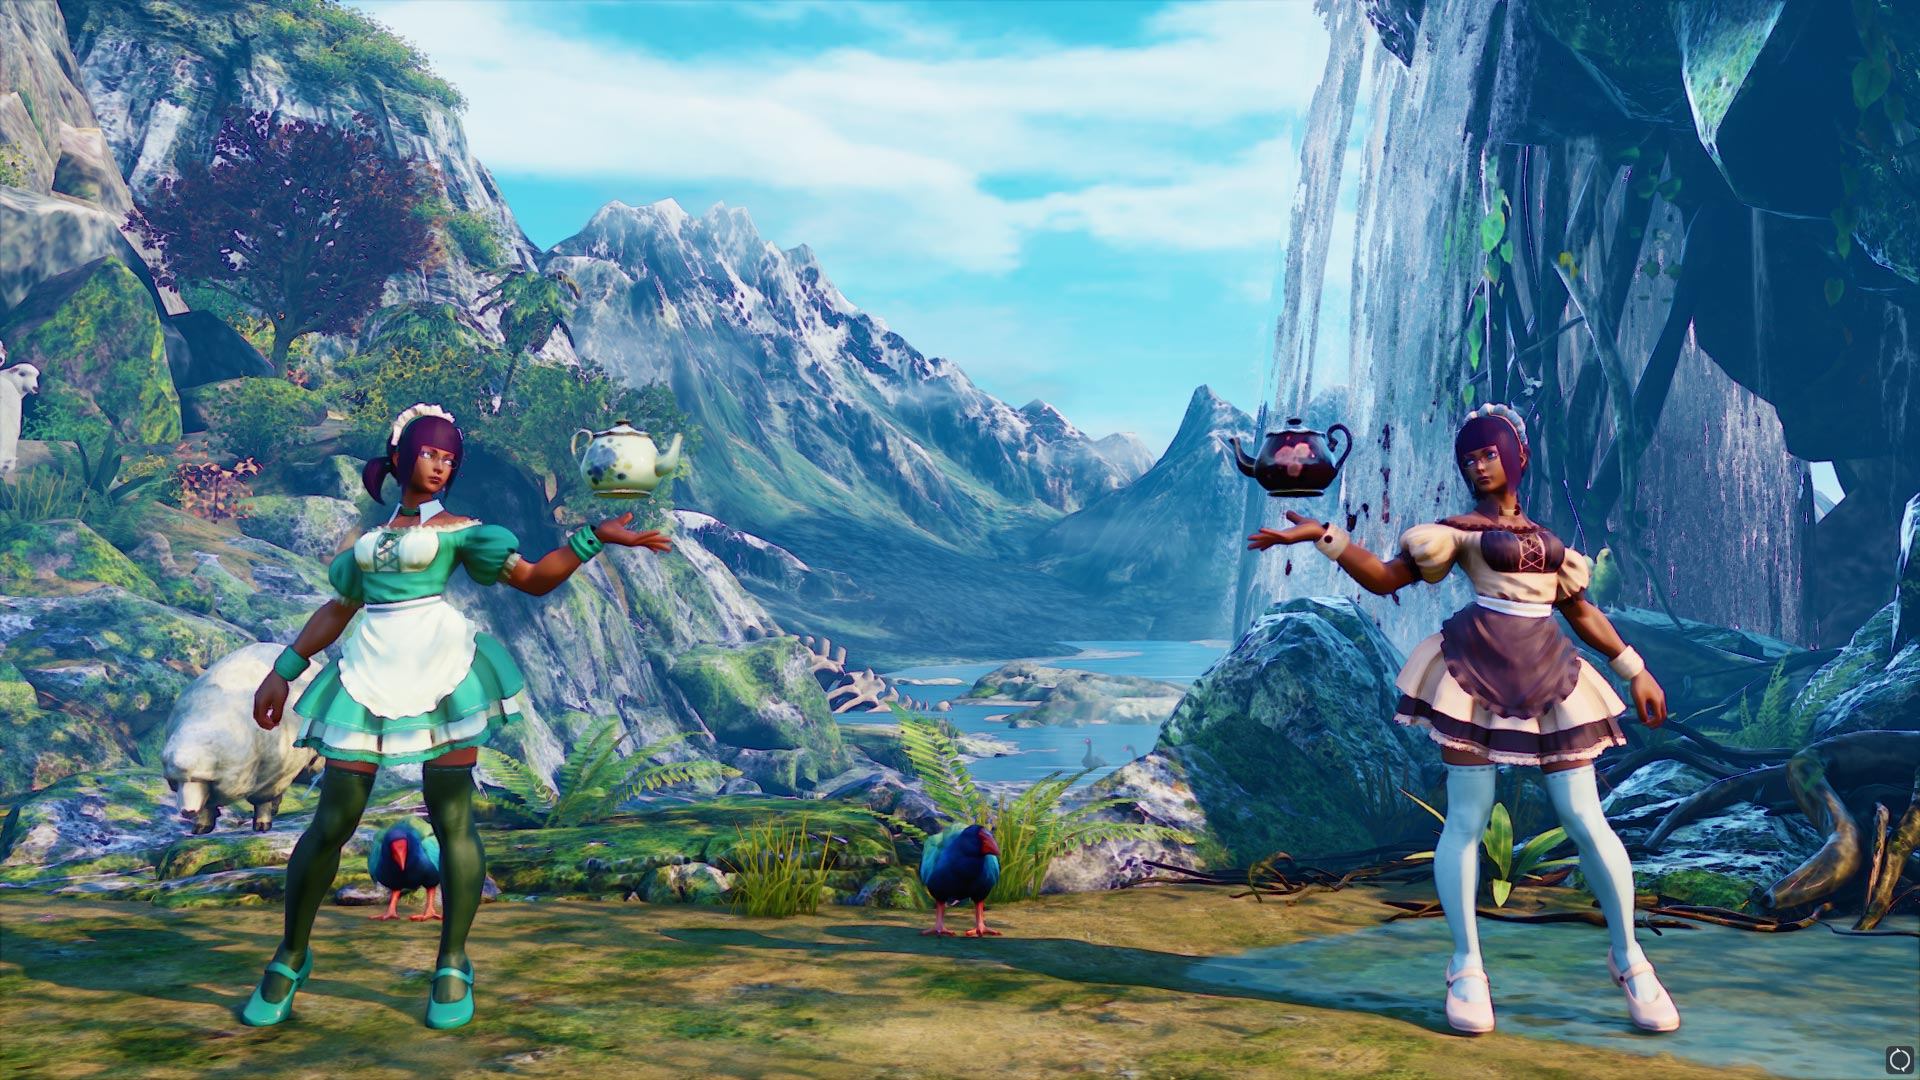 Professional costume colors for Street Fighter 5 14 out of 21 image gallery